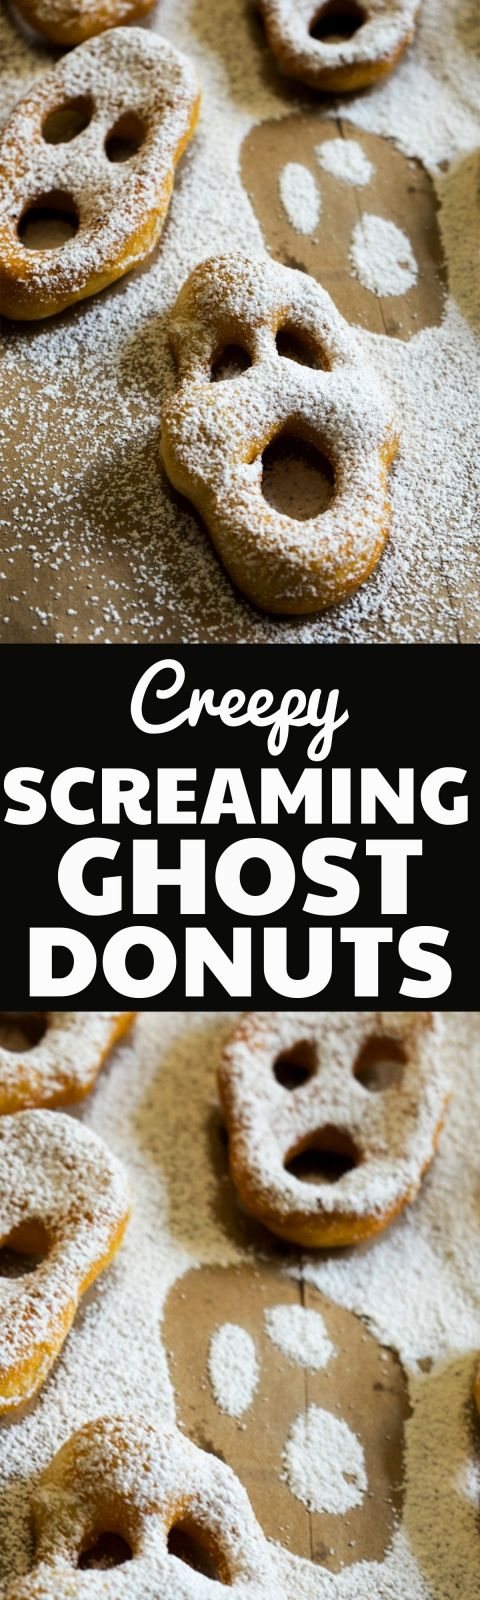 These Screaming Ghost Donuts are the perfect easy dessert for a creepy party this halloween! They are so easy to make using refrigerated biscuit dough and are always a hit!